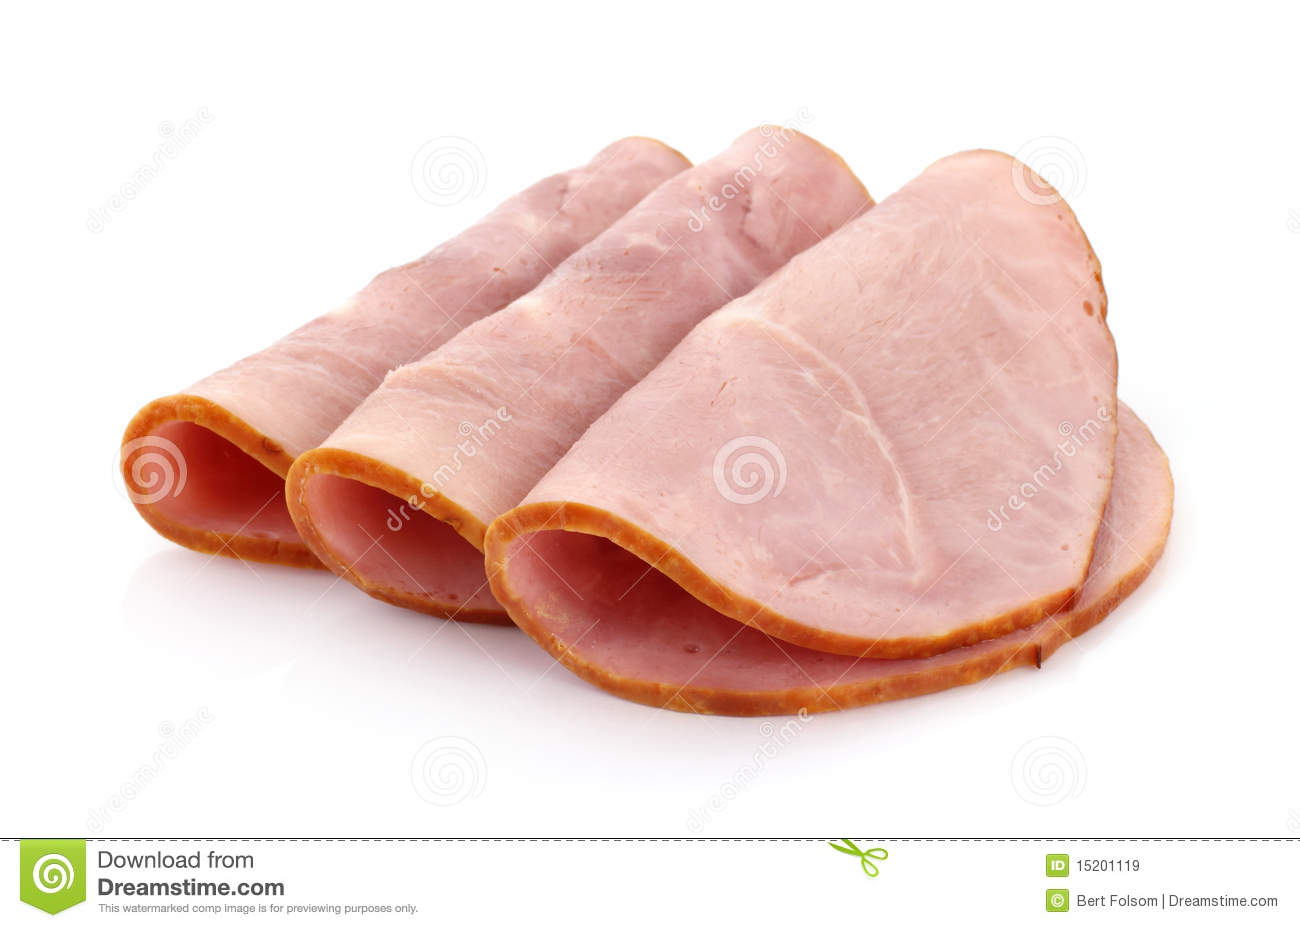 Three Slices Of Baked Ham Royalty Free Stock Images - Image: 15201119